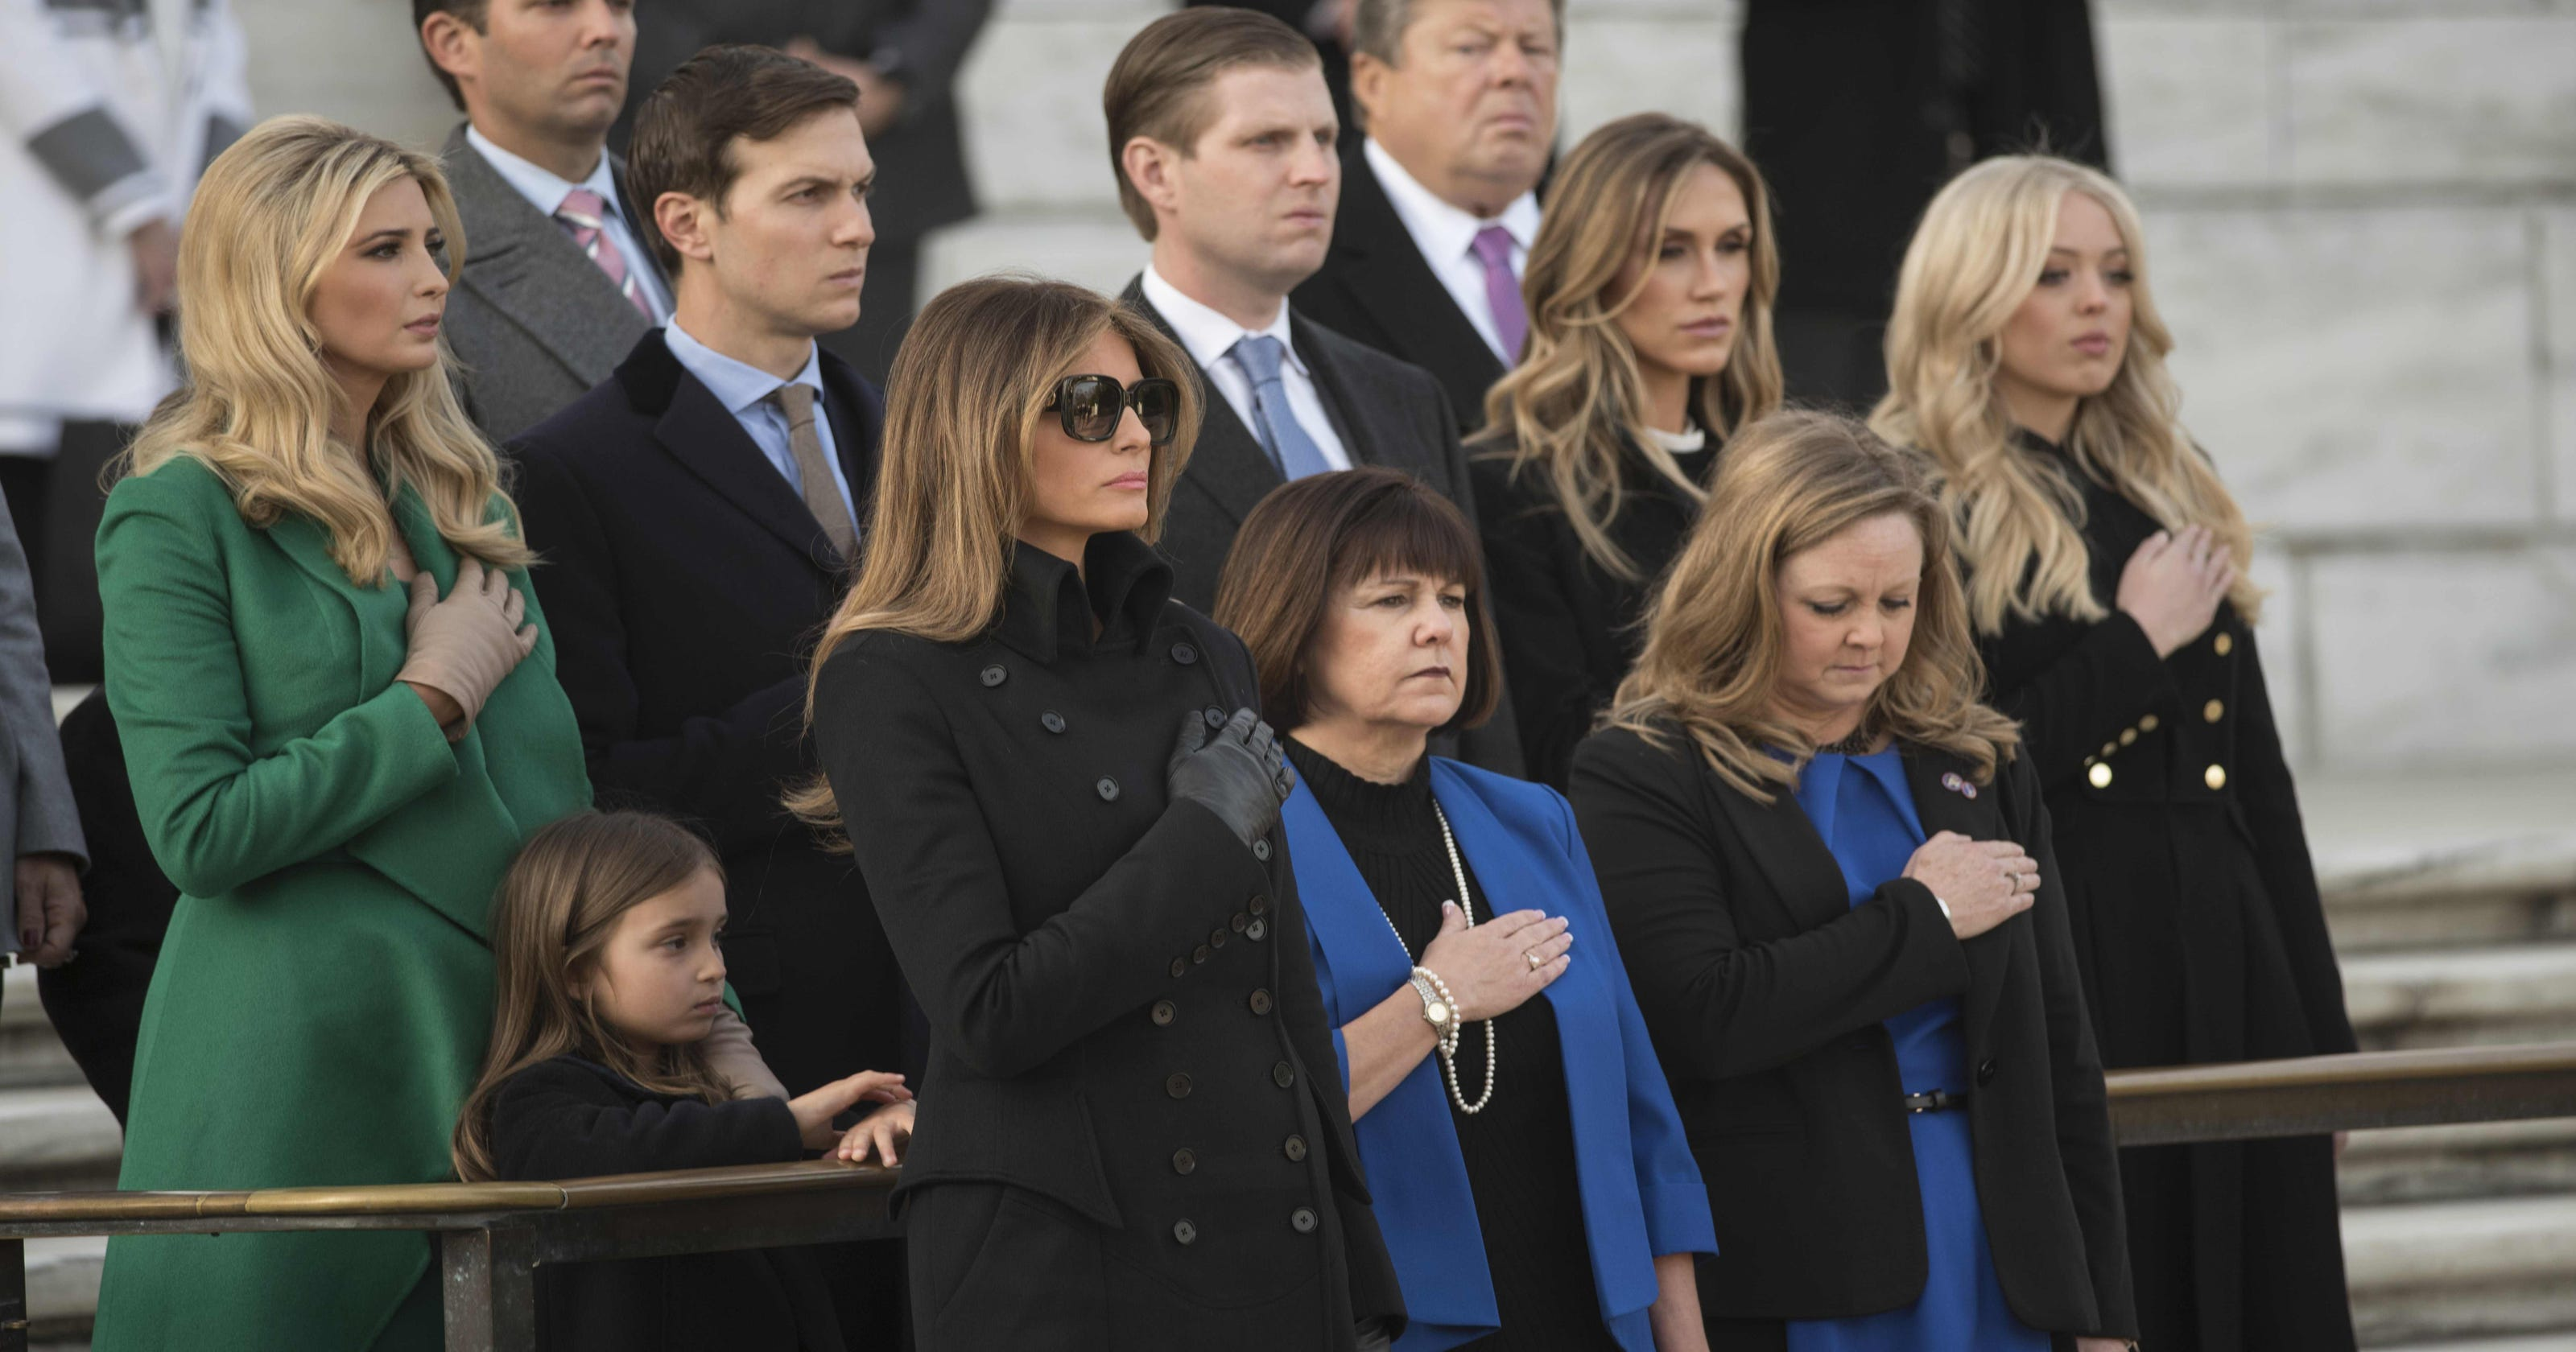 6795a0b36 Ivanka goes green, outshines Melania in pre-inaugural Trump family  appearance